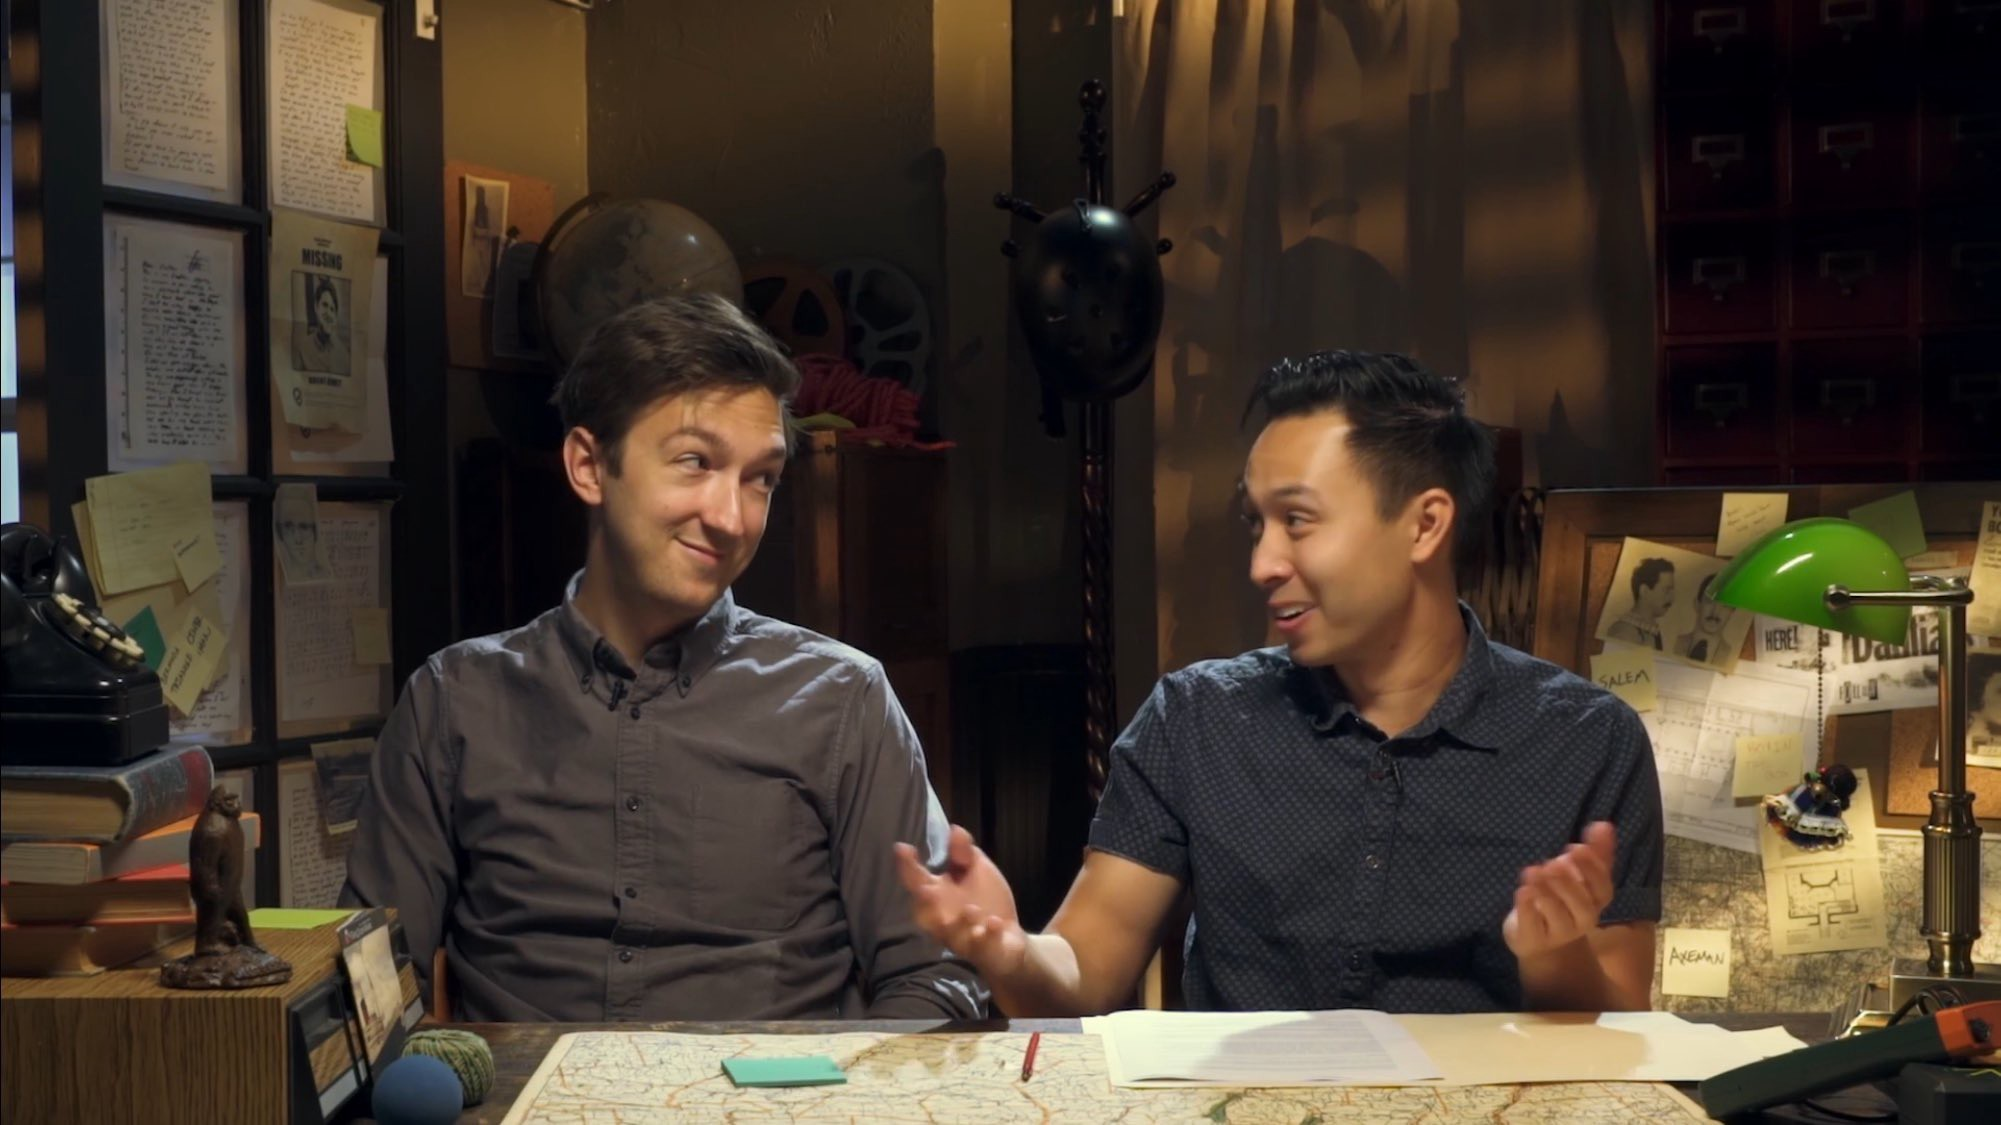 BuzzFeed Unsolved | Know Your Meme